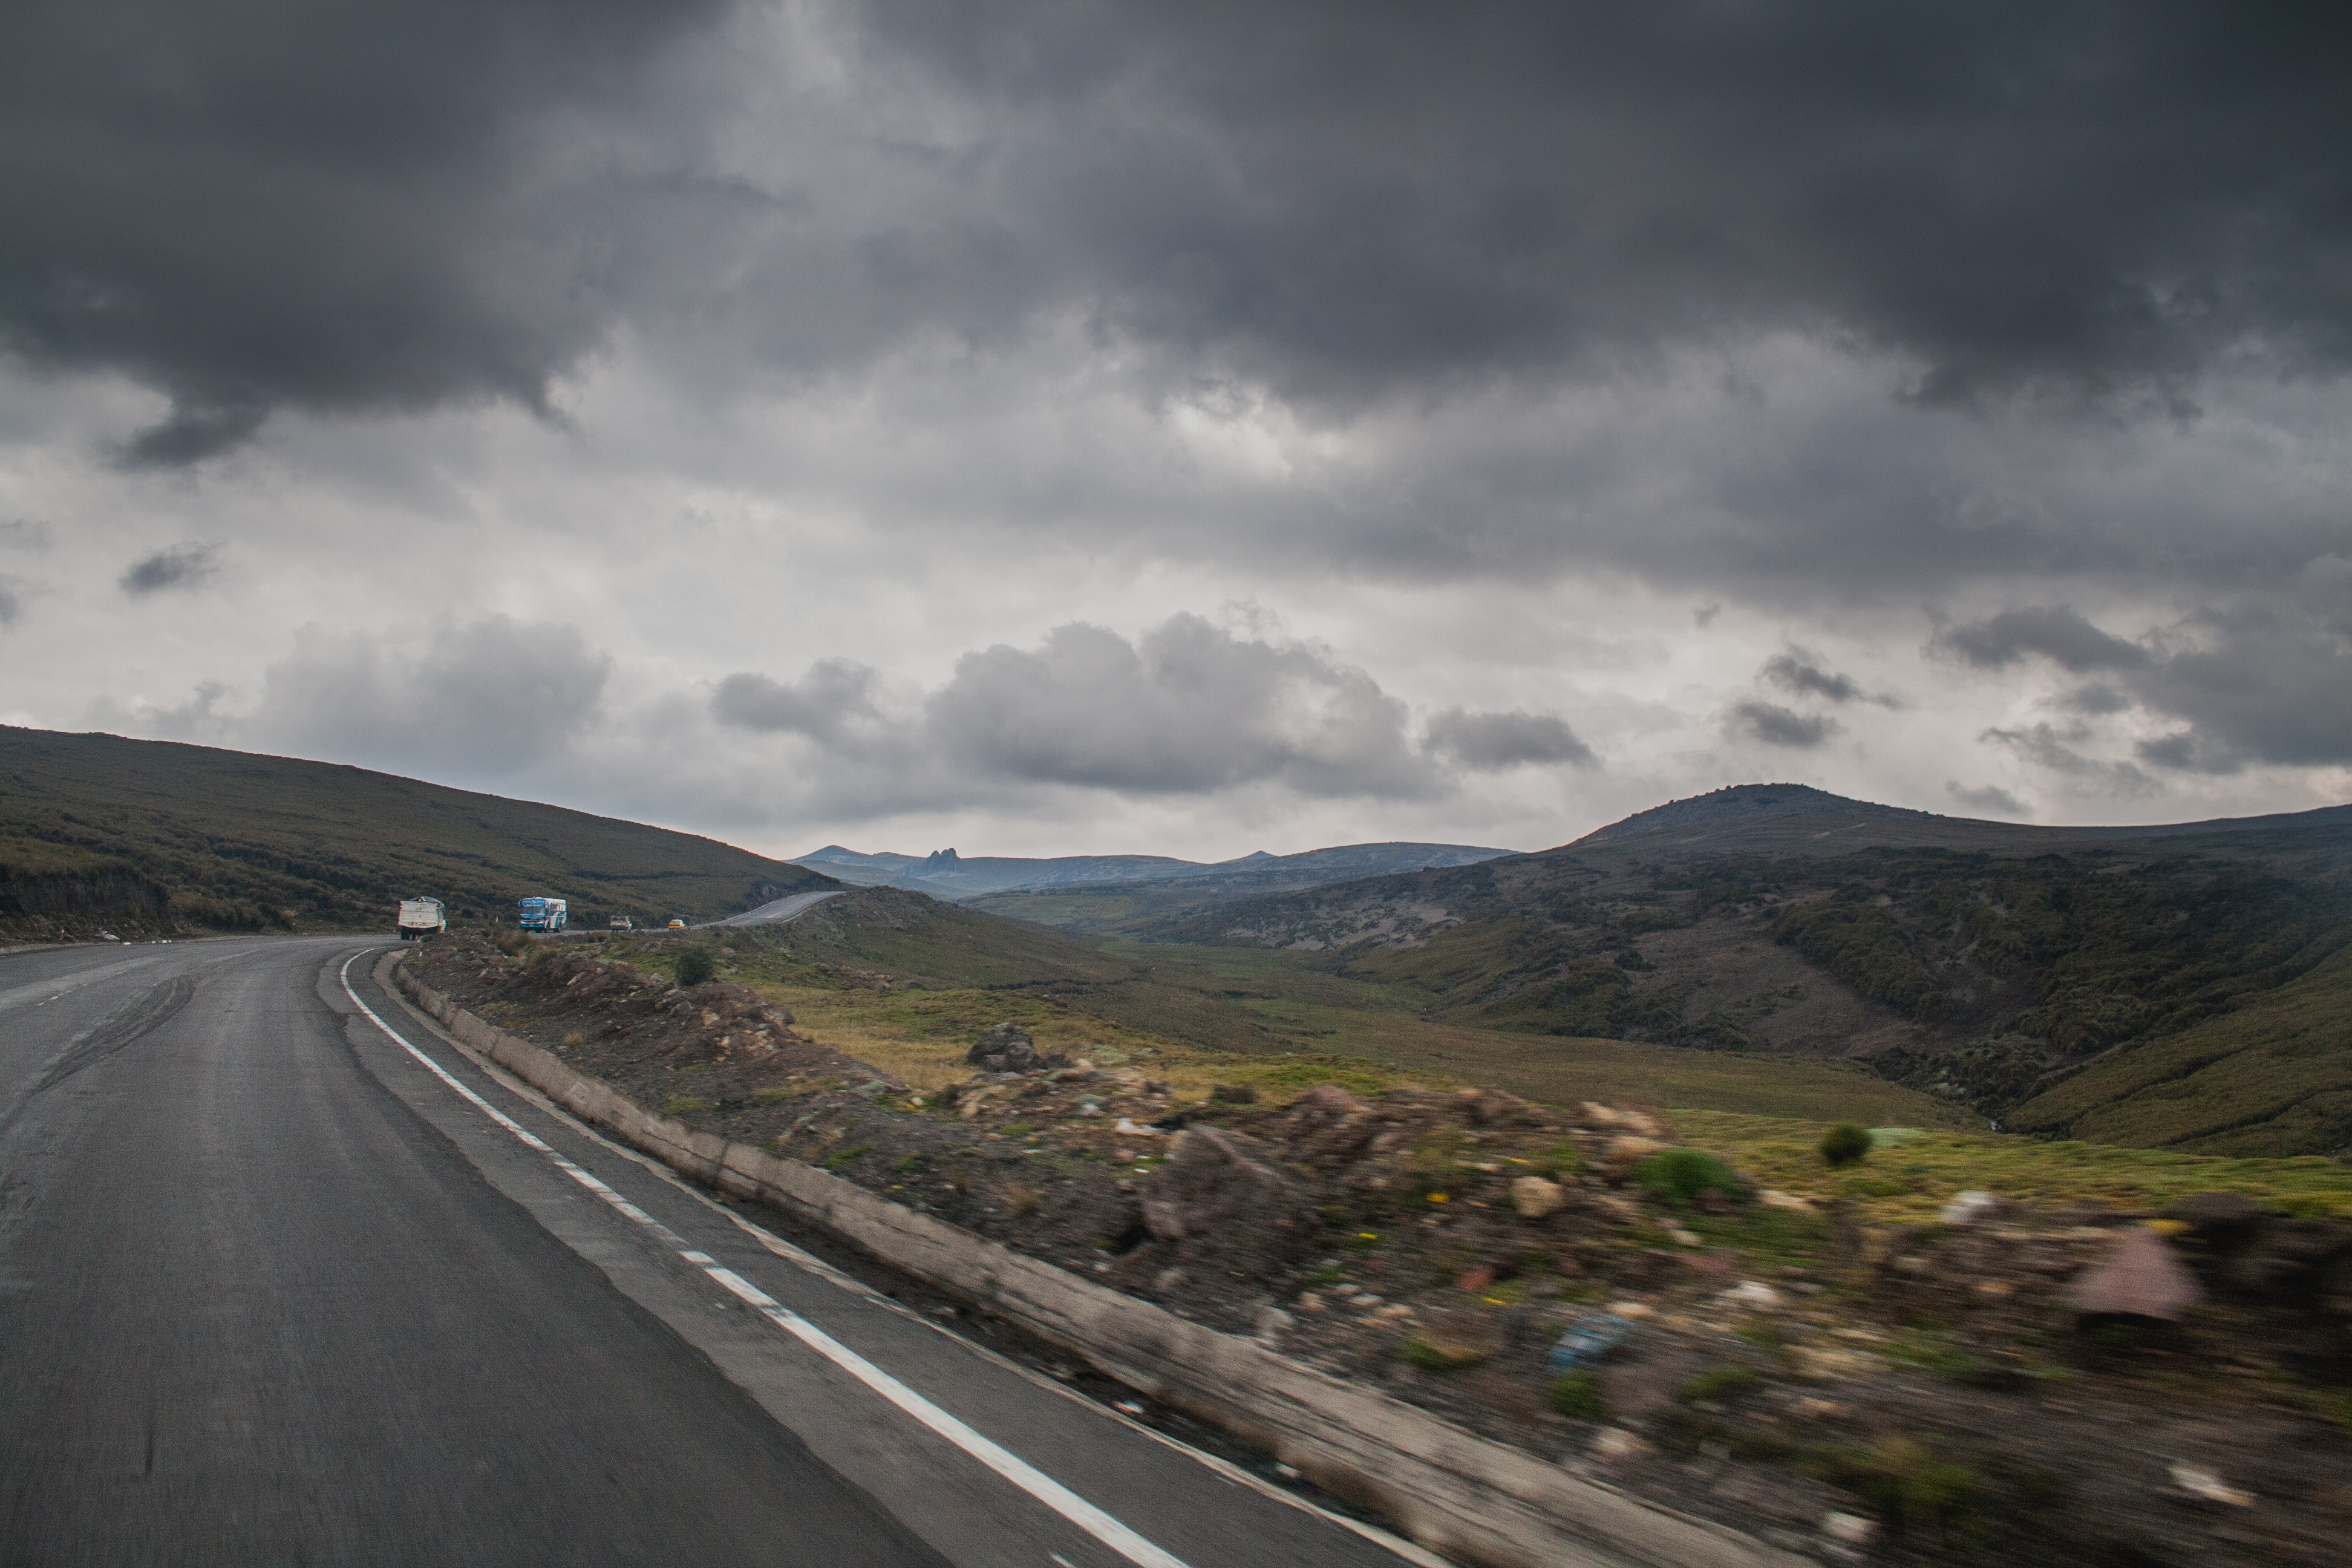 Road near brown stone during cloudy photo